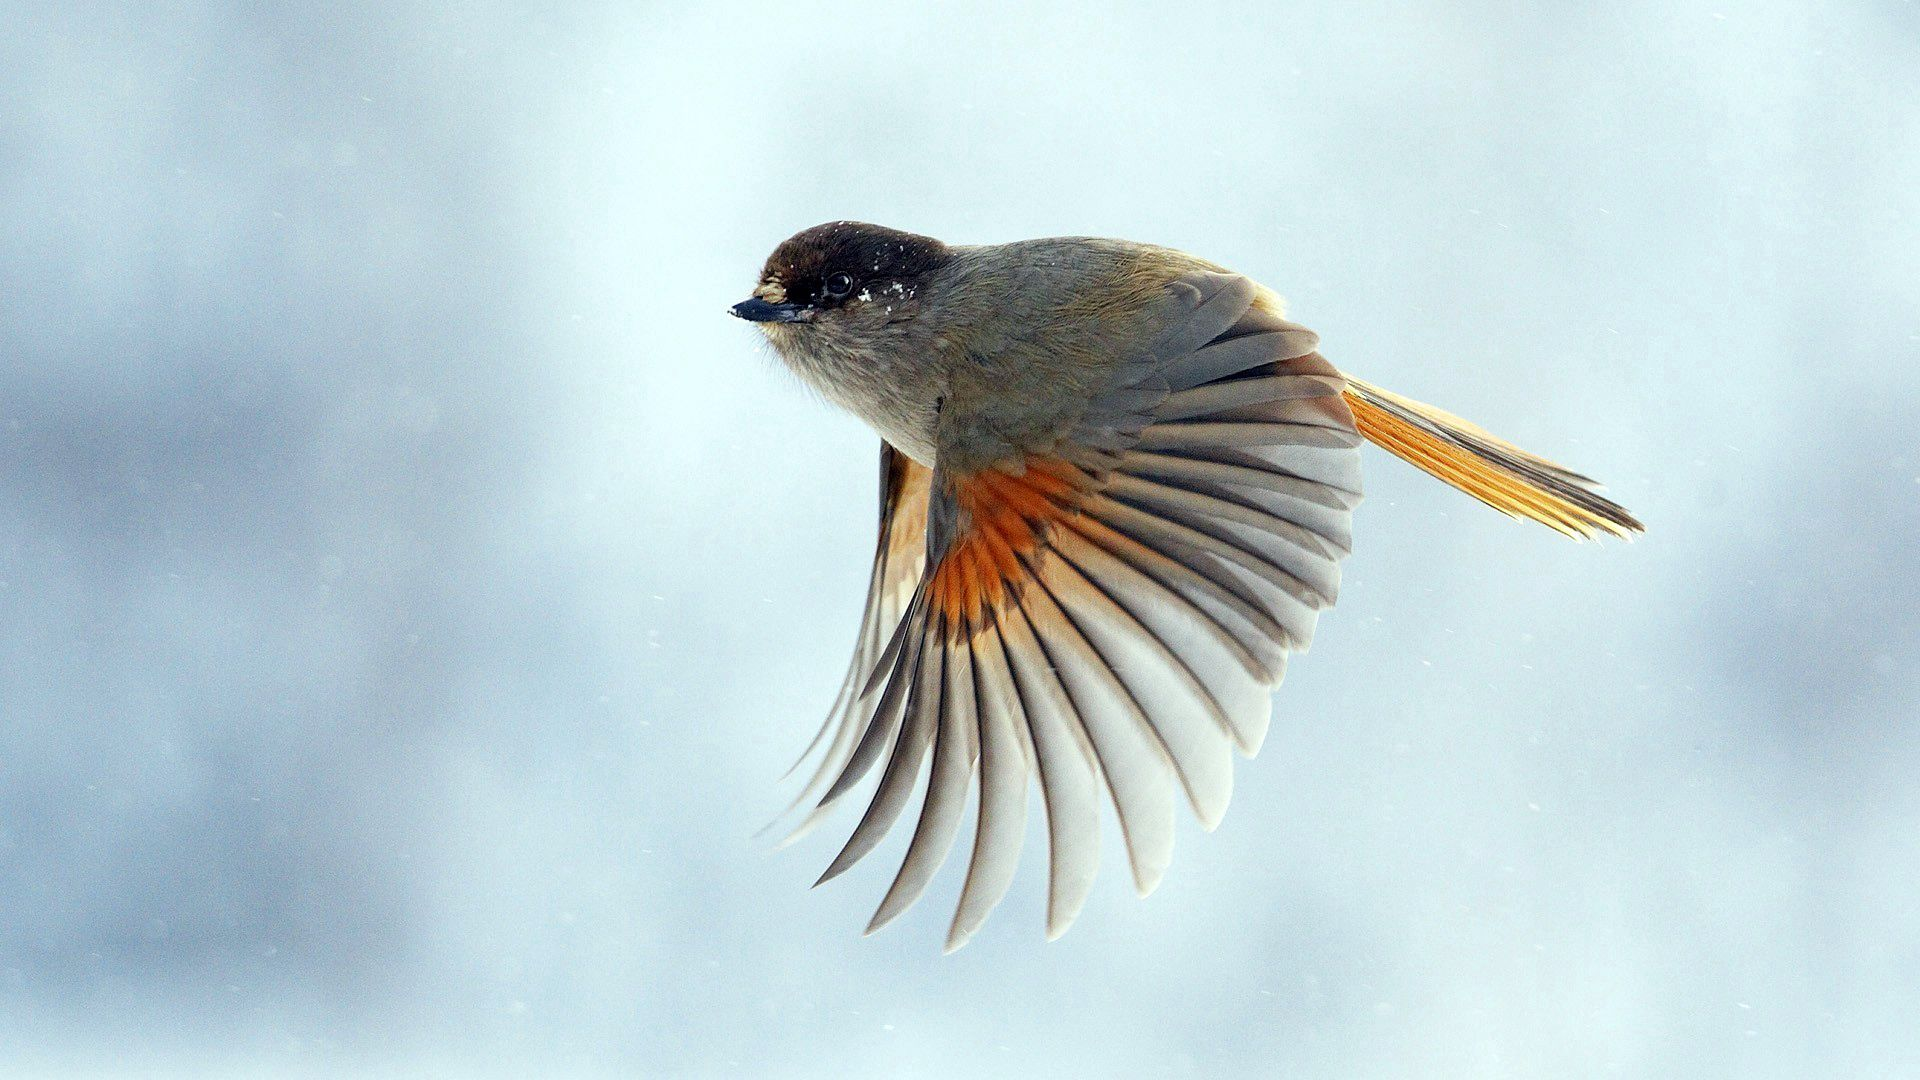 89664 Screensavers and Wallpapers Wings for phone. Download Animals, Bird, Flight, Wings, Wave, Sweep pictures for free